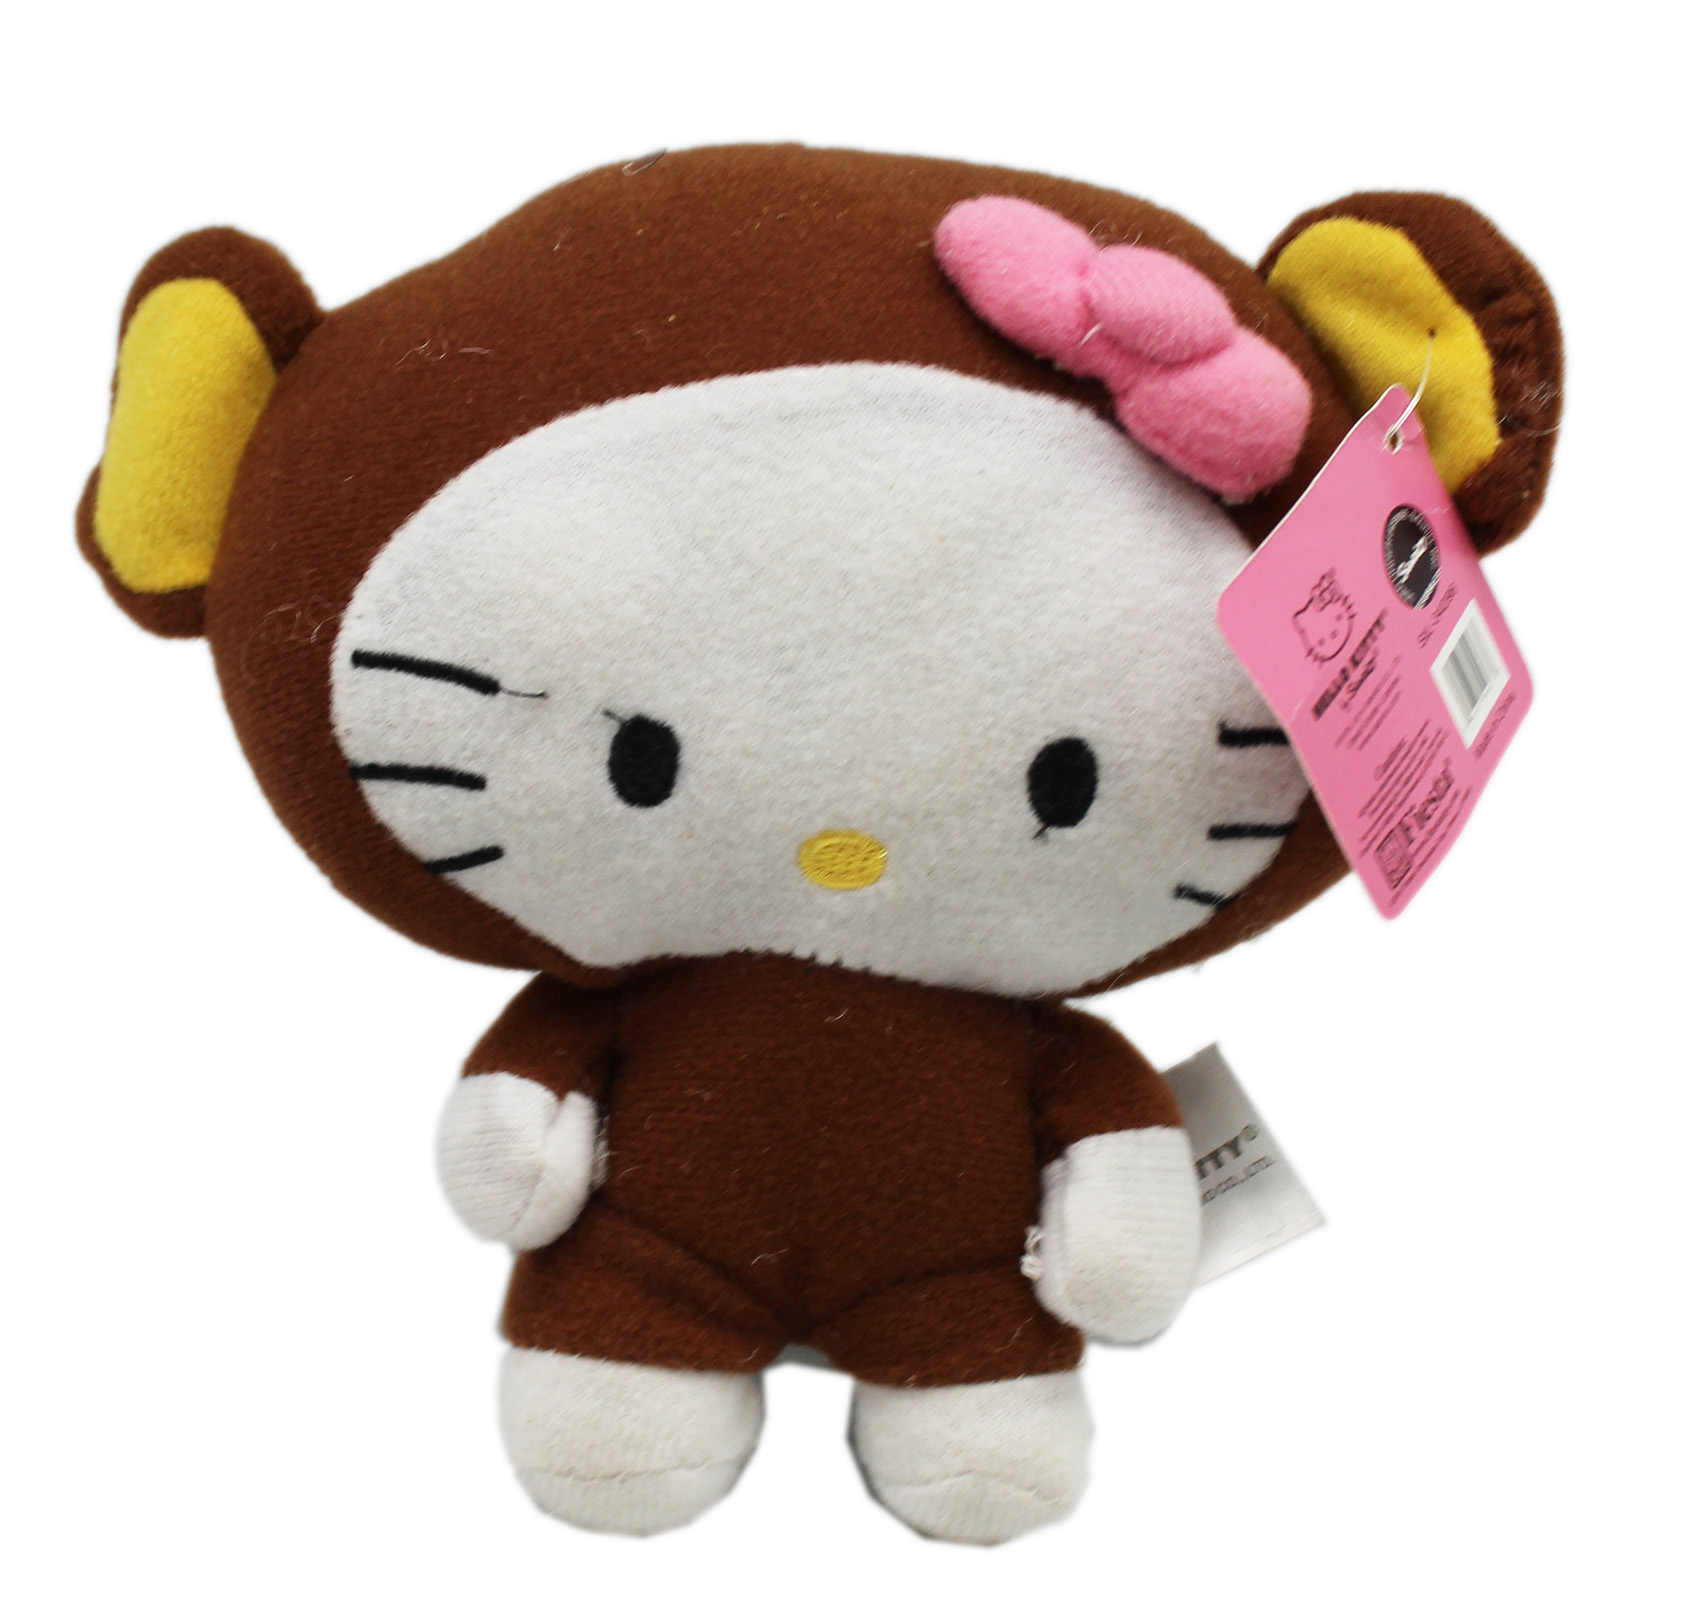 Hello Kitty In a Bear Outfit Stuffed Plush Toy (6in) by